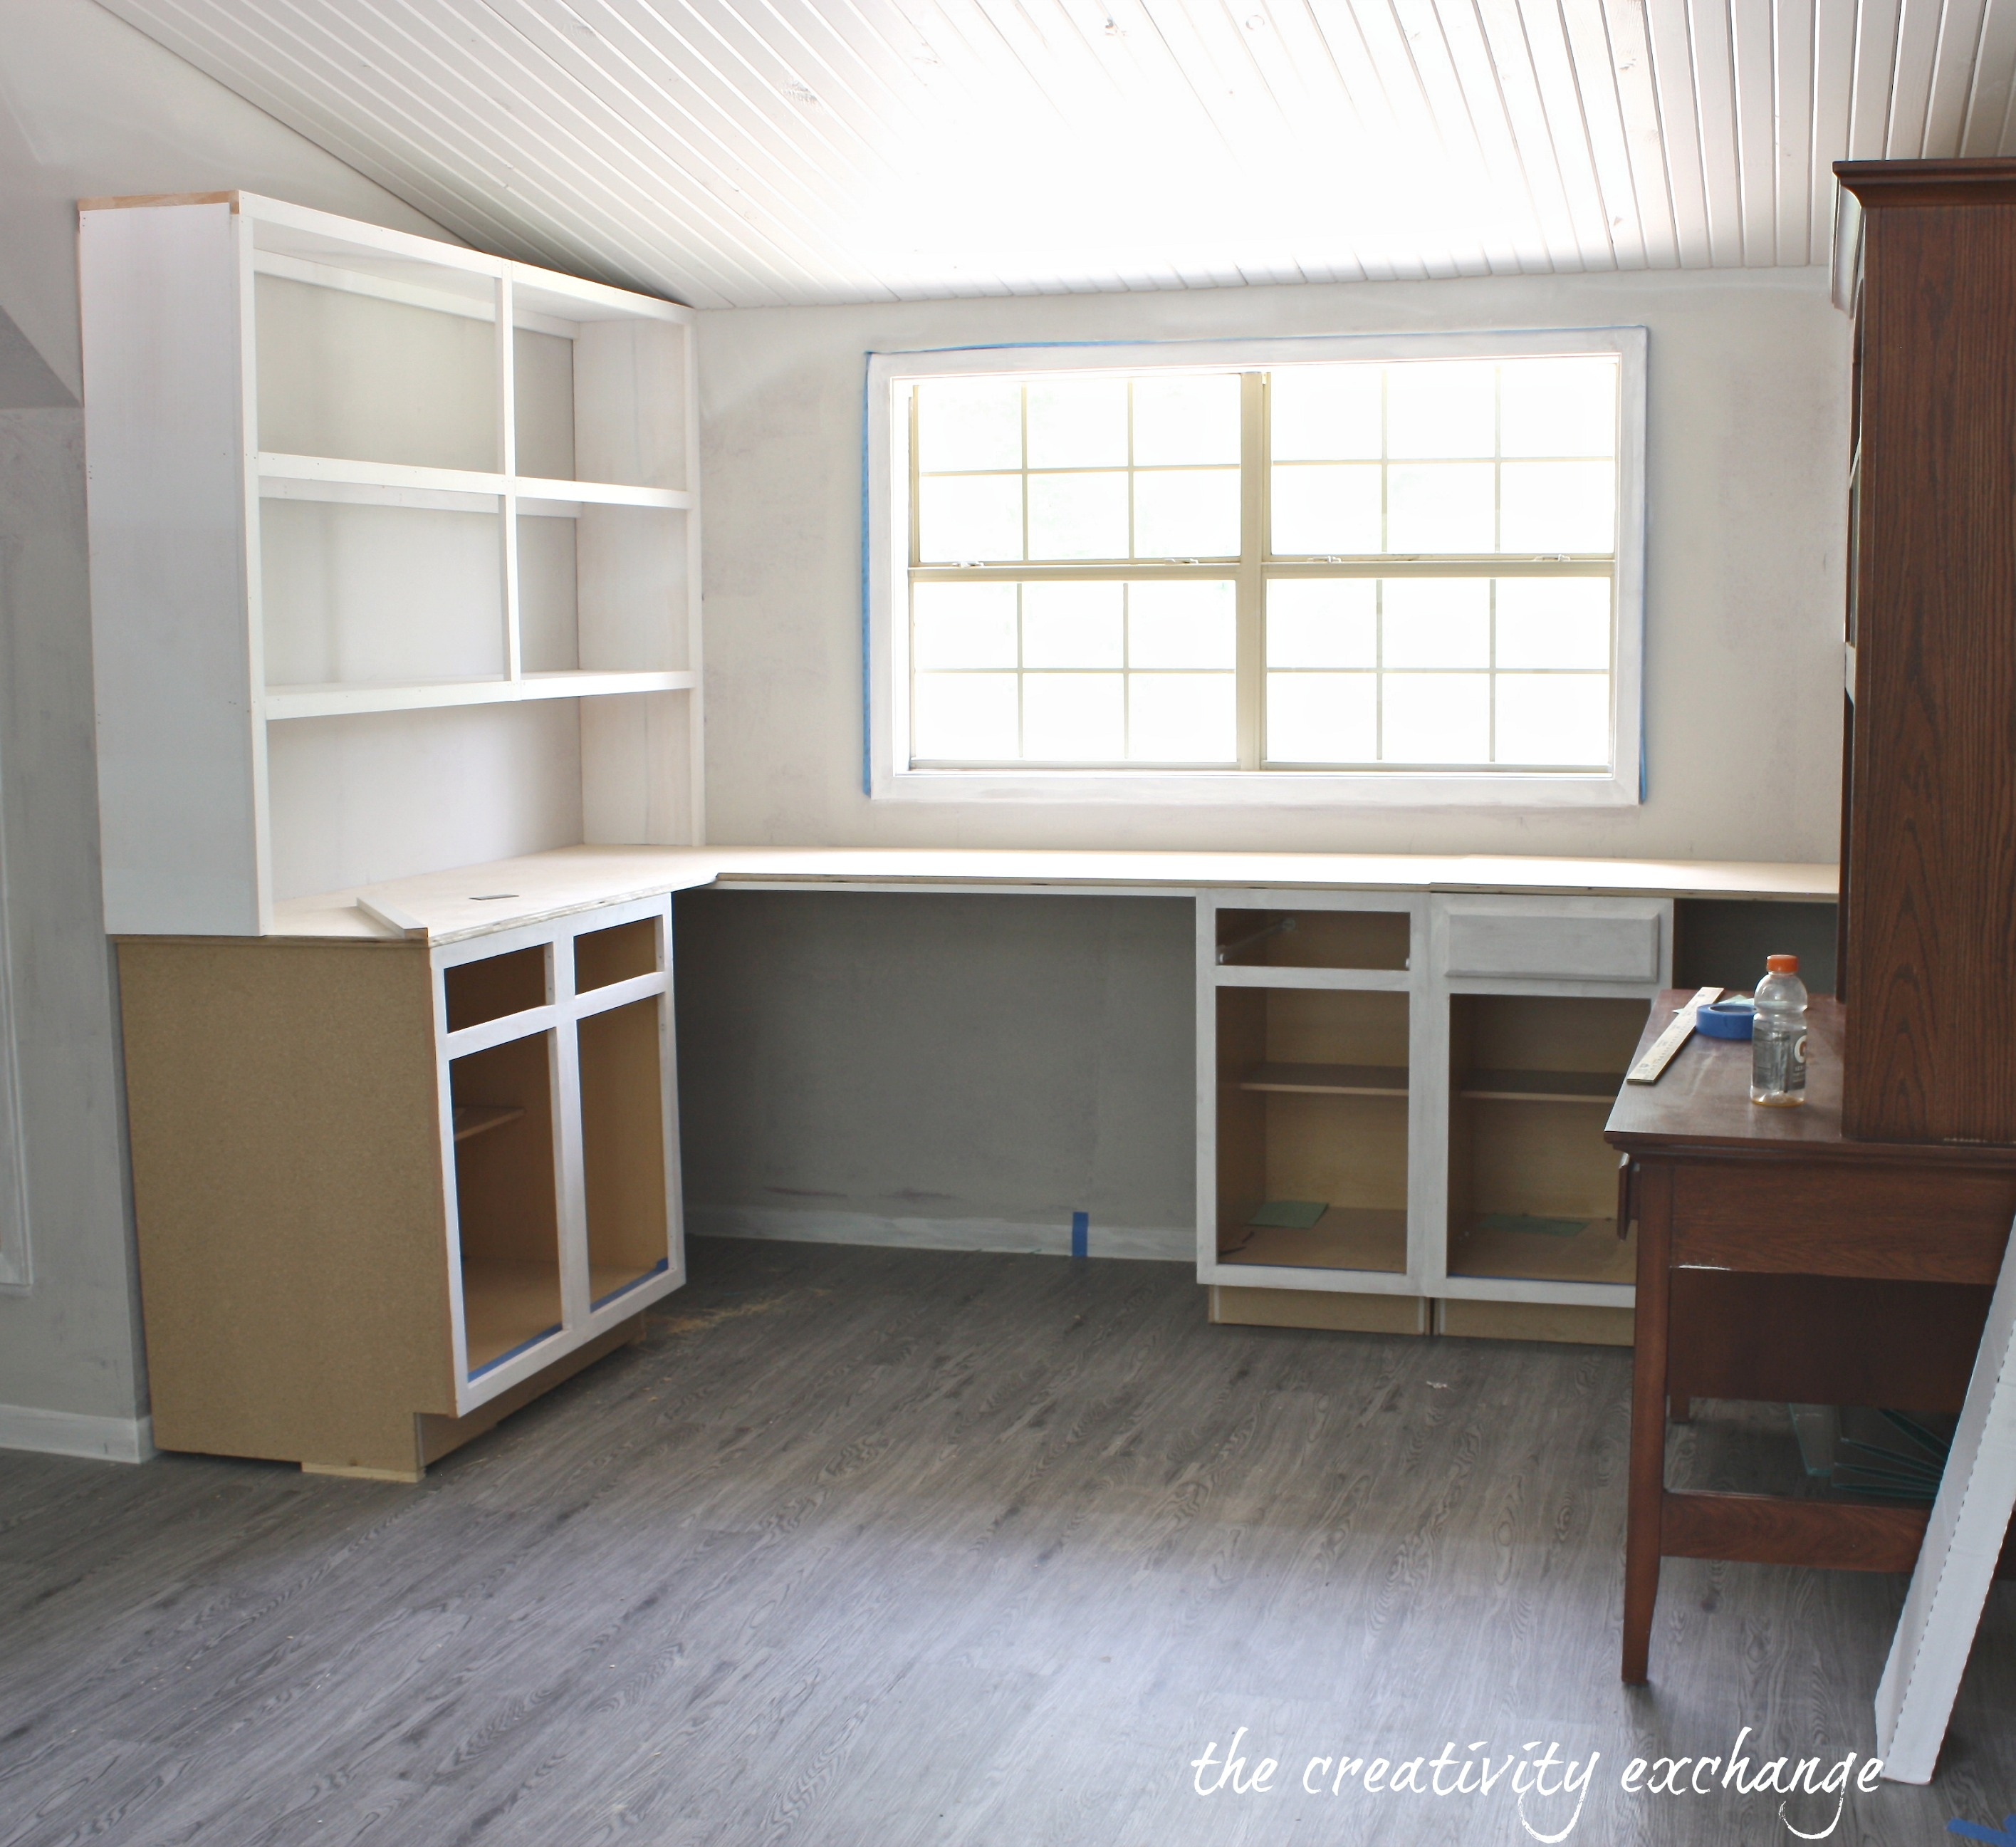 Create Built In Shelving And Cabinets On A Tight Budget Throughout Built In Cupboard Shelving (View 7 of 15)